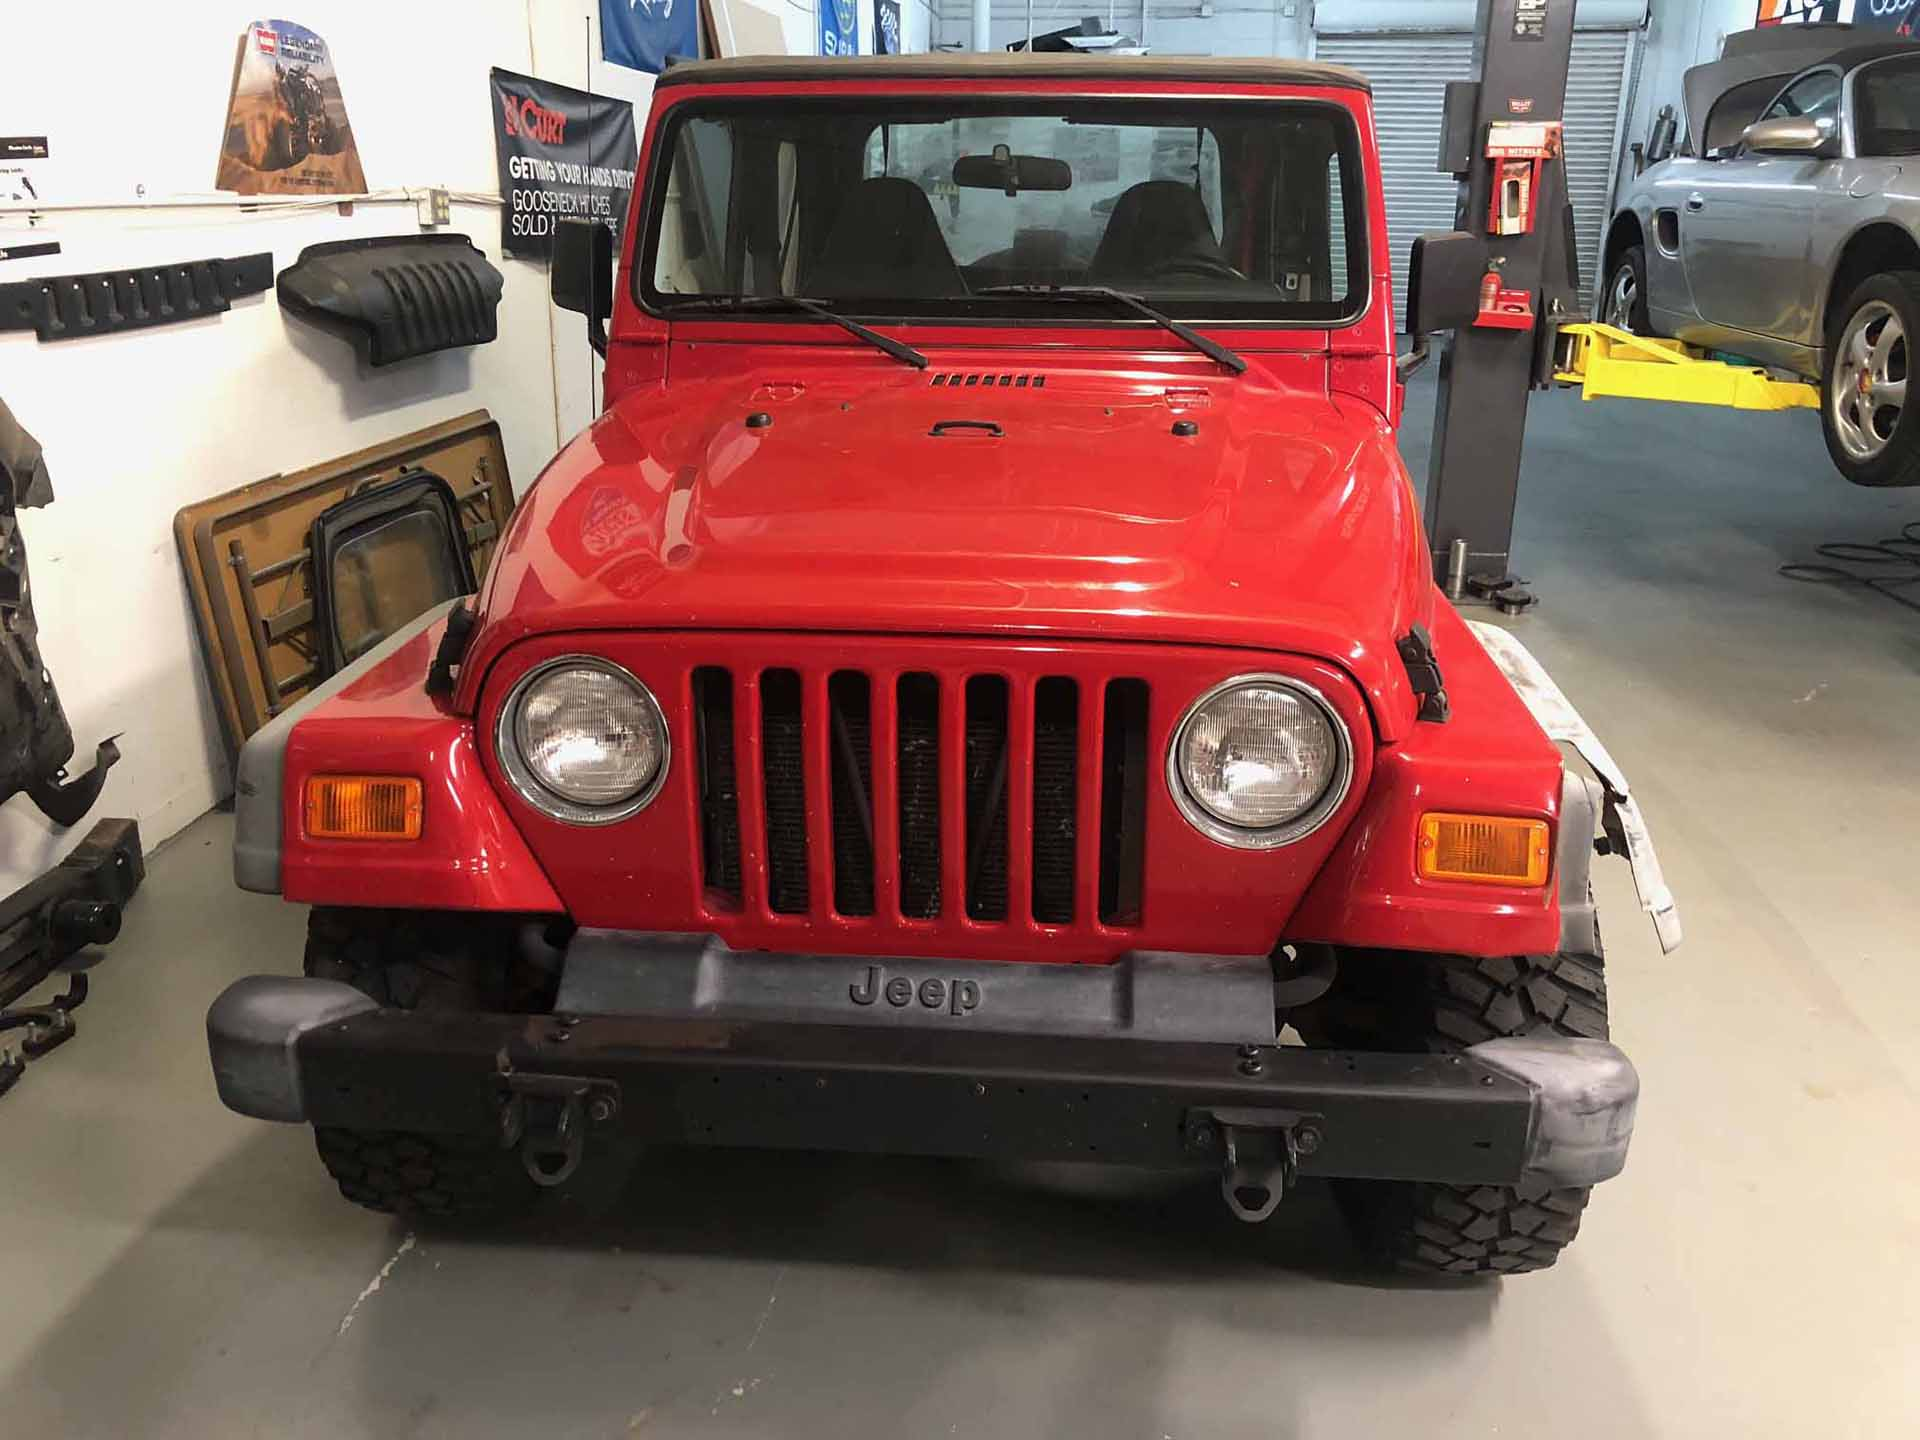 Jeep 2001 Red Before front